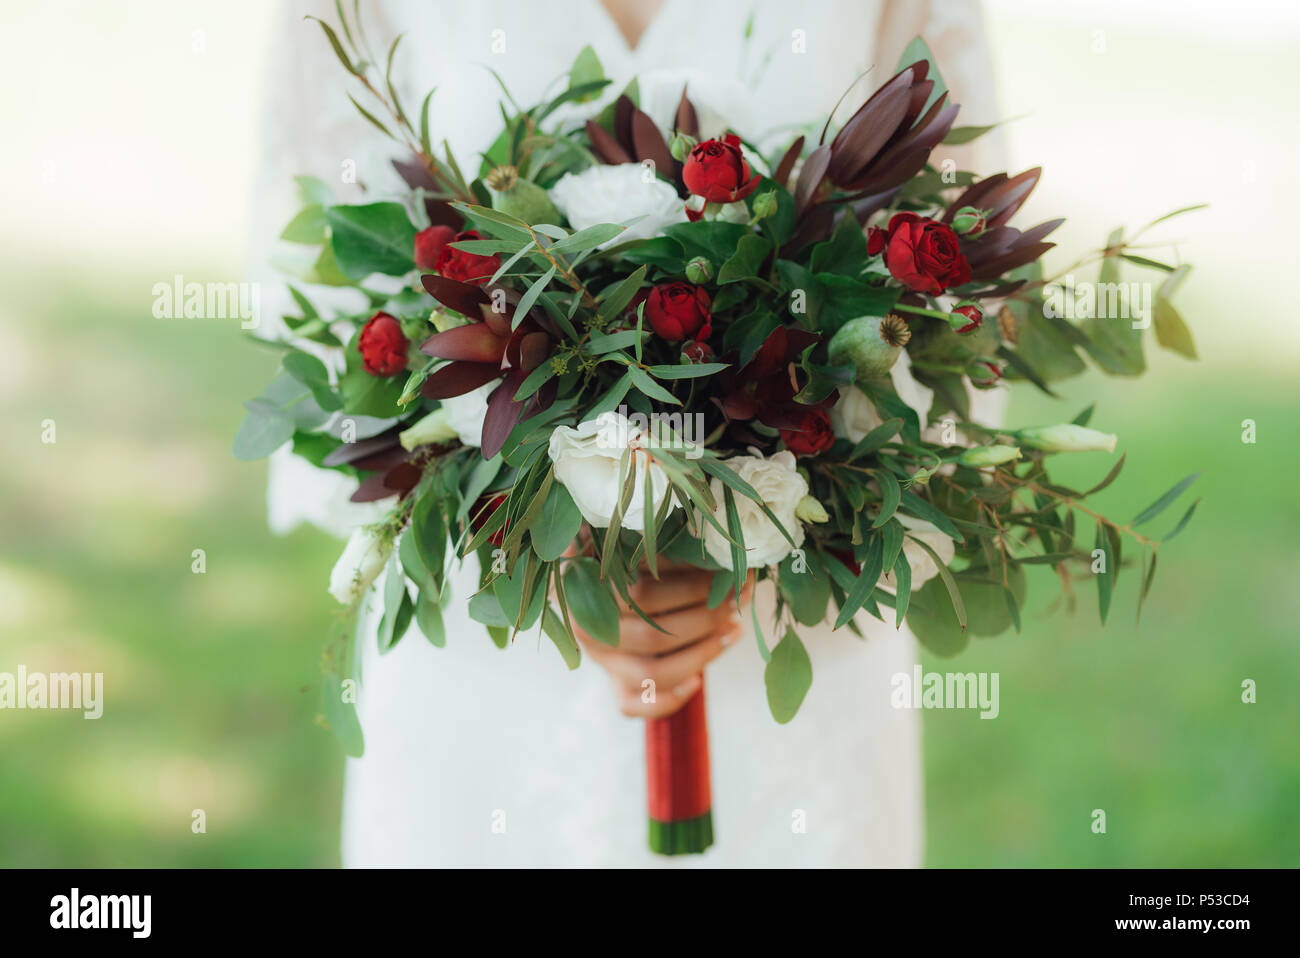 Wedding Bouquet Of Red Flowers And Greenery In The Hands Of The